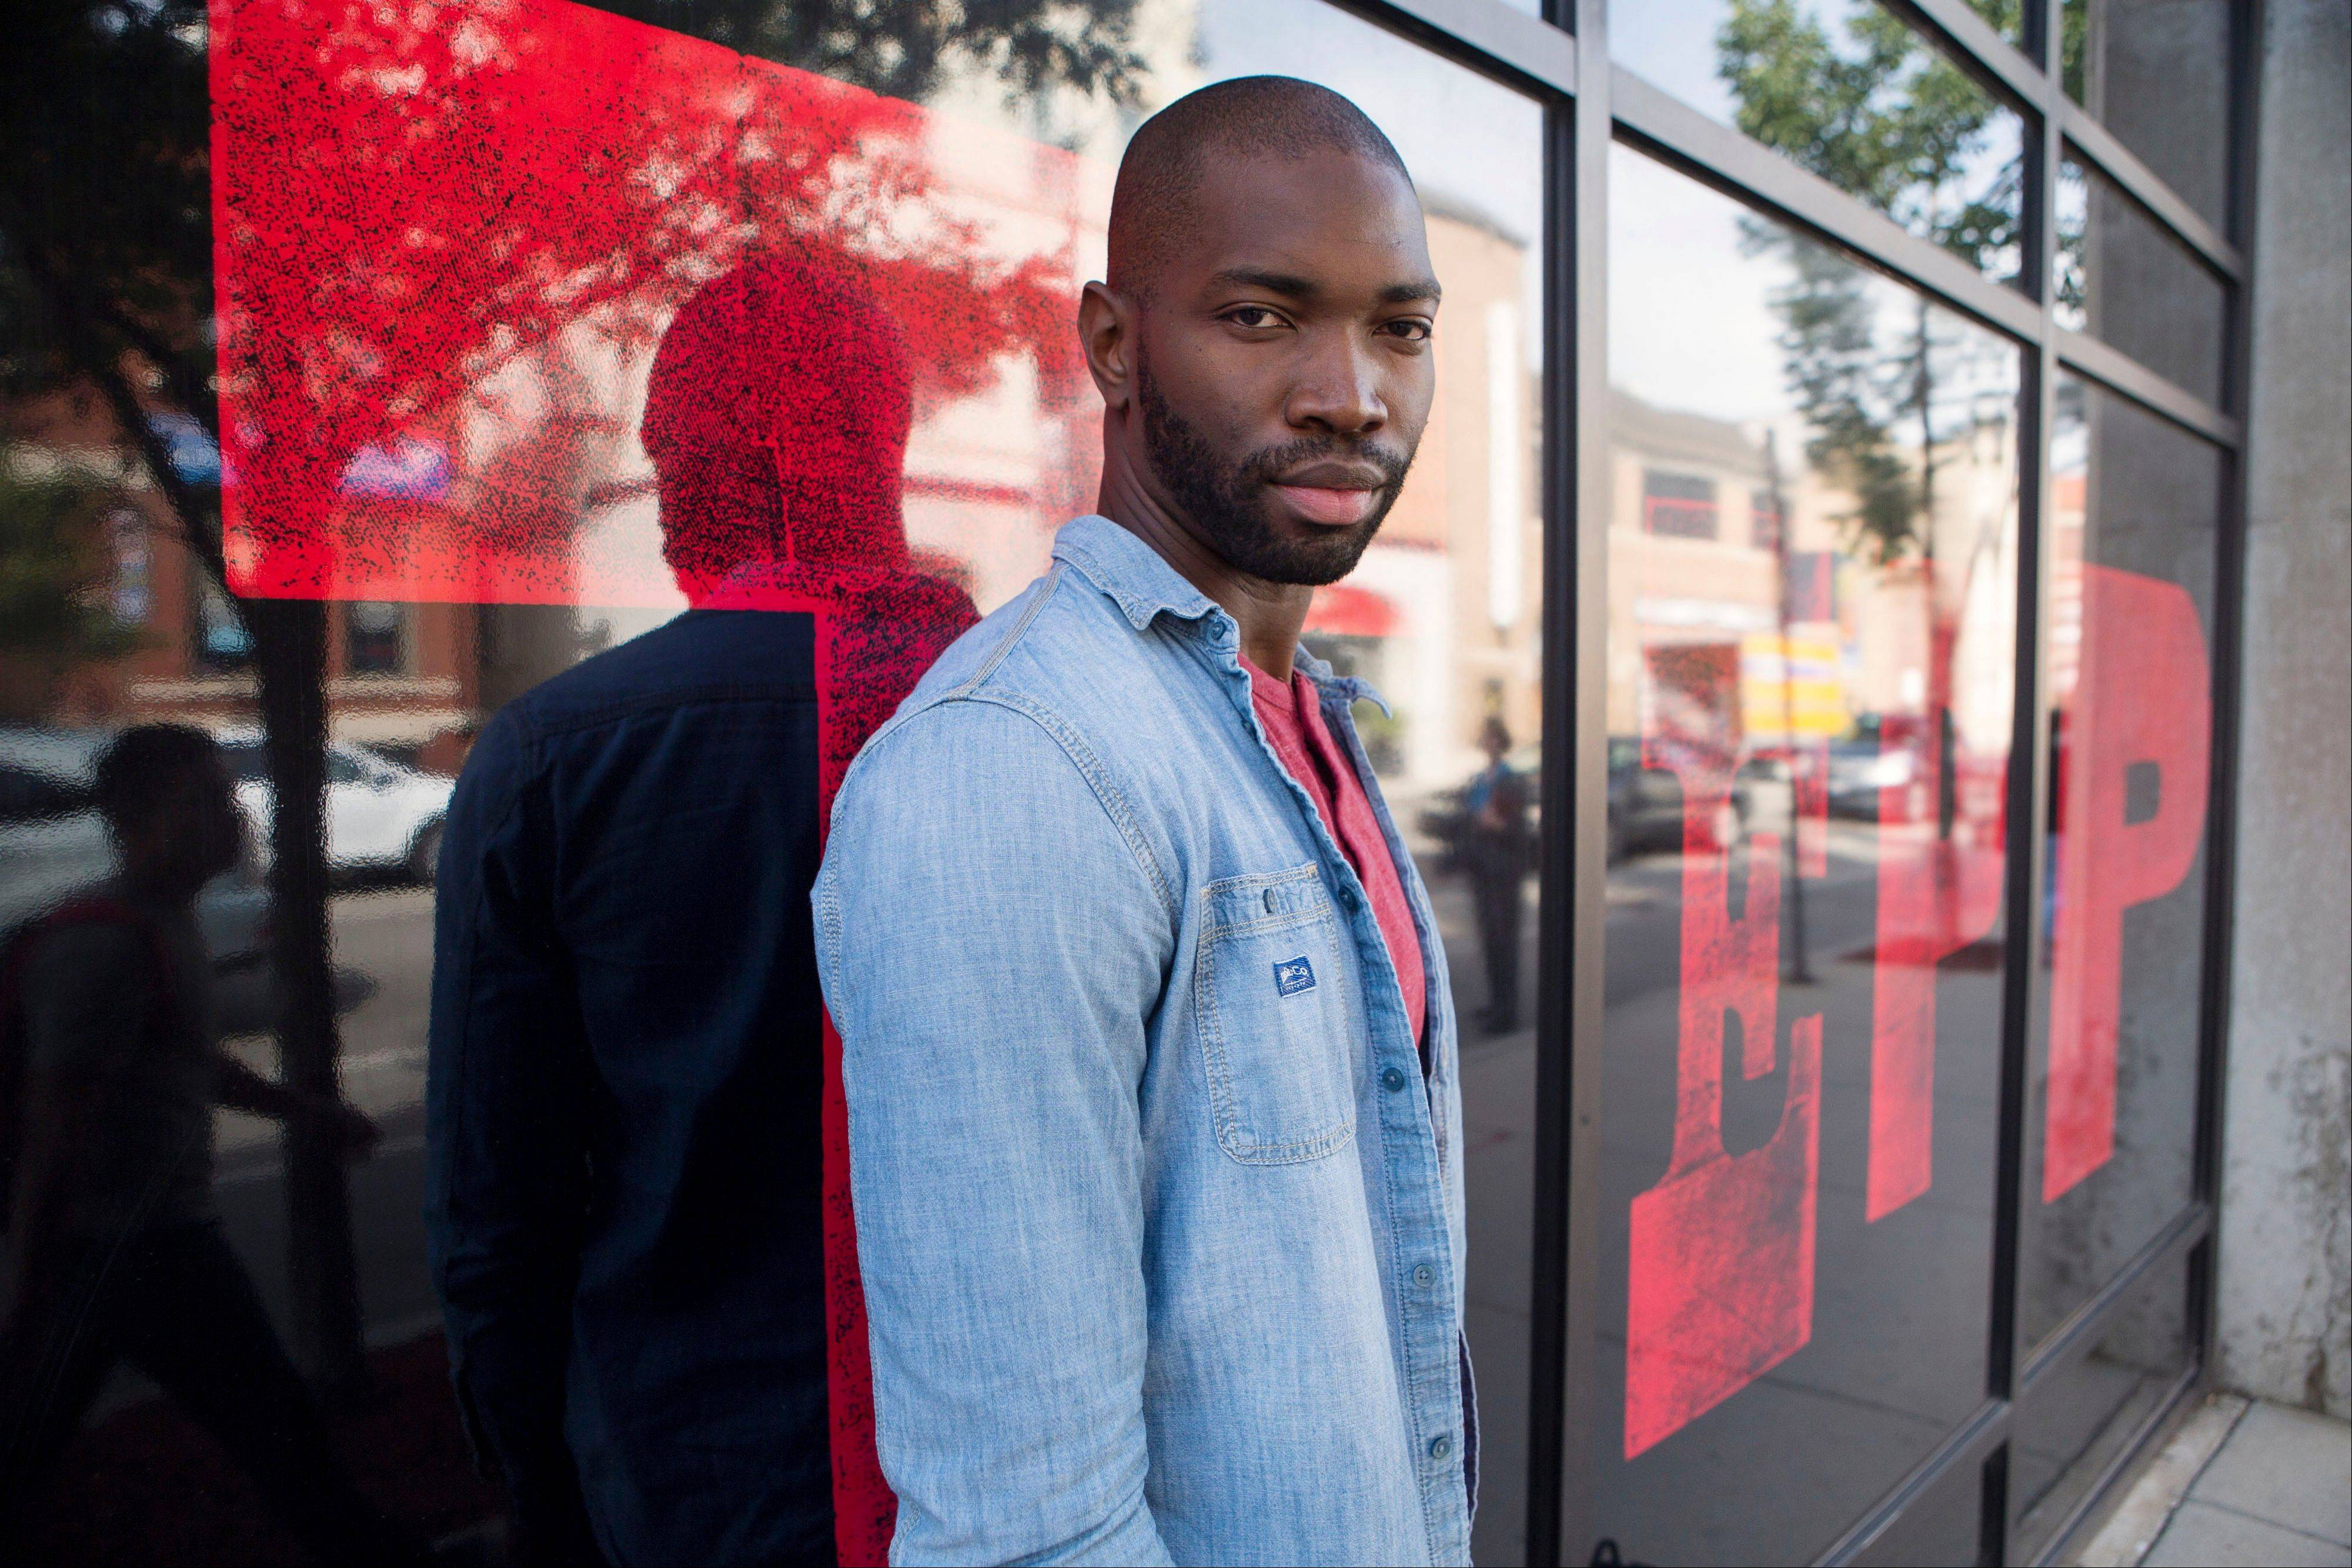 Playwright Tarell McCraney, an ensemble member with the Steppenwolf Theatre Company in Chicago, is among the 24 recipients named Wednesday, Sept. 25, 2013, to receive a $625,000 �genius grant� from the MacArthur Foundation.